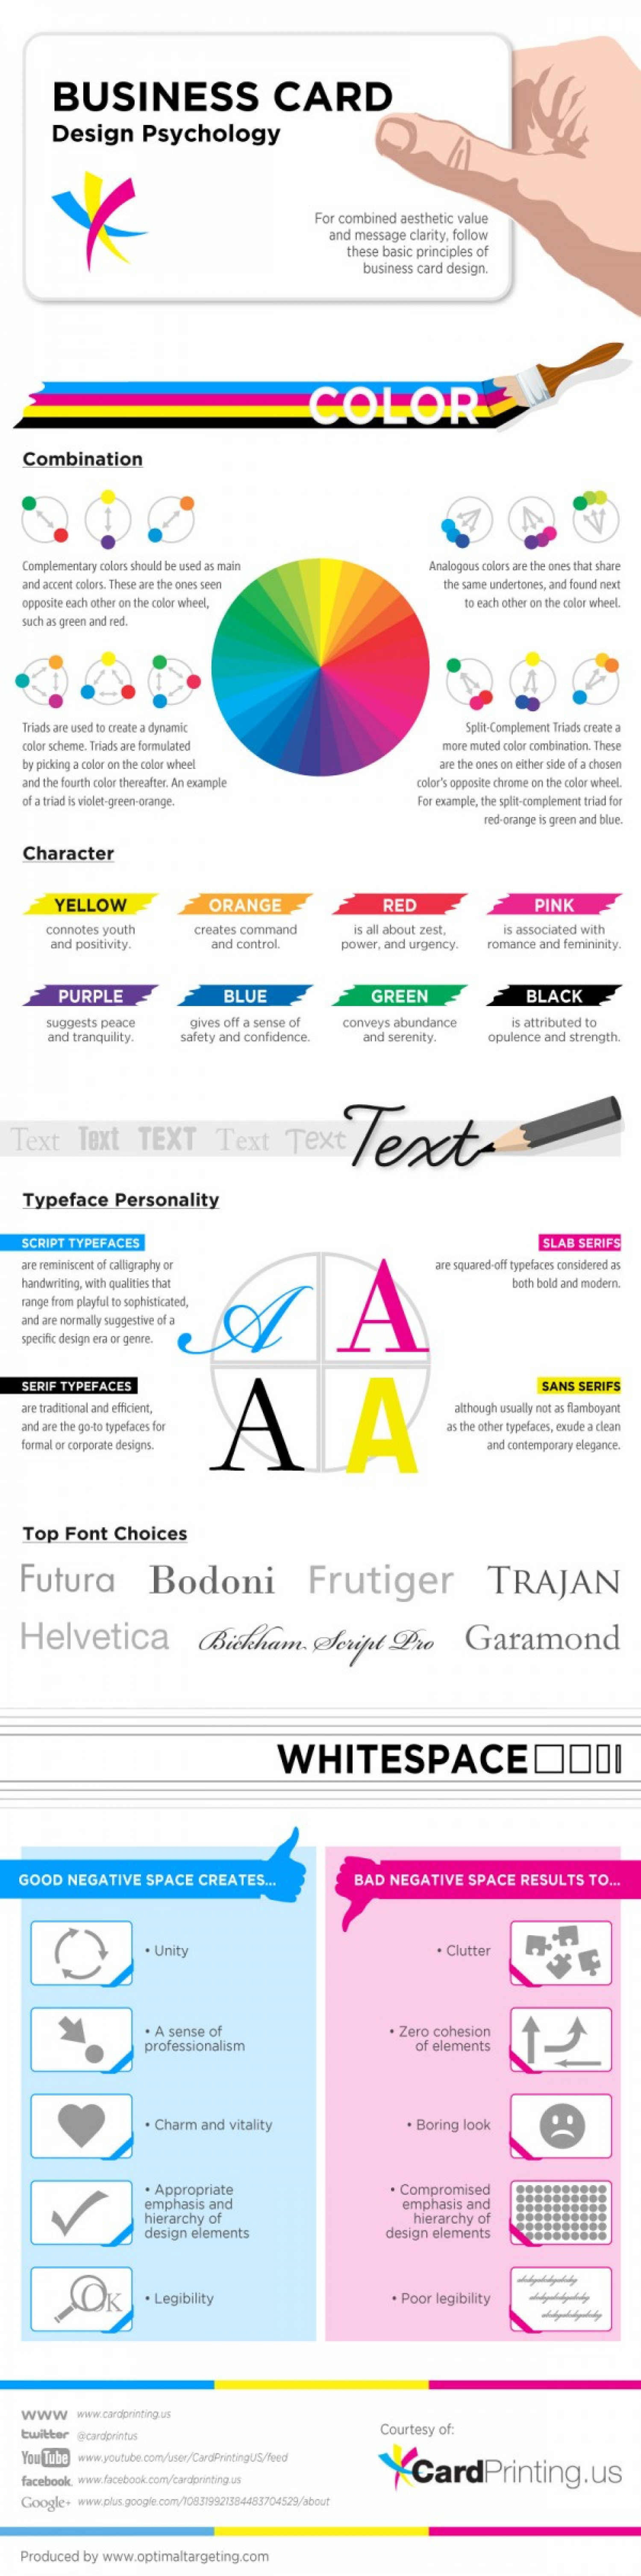 Business Card Design Psychology Infographic